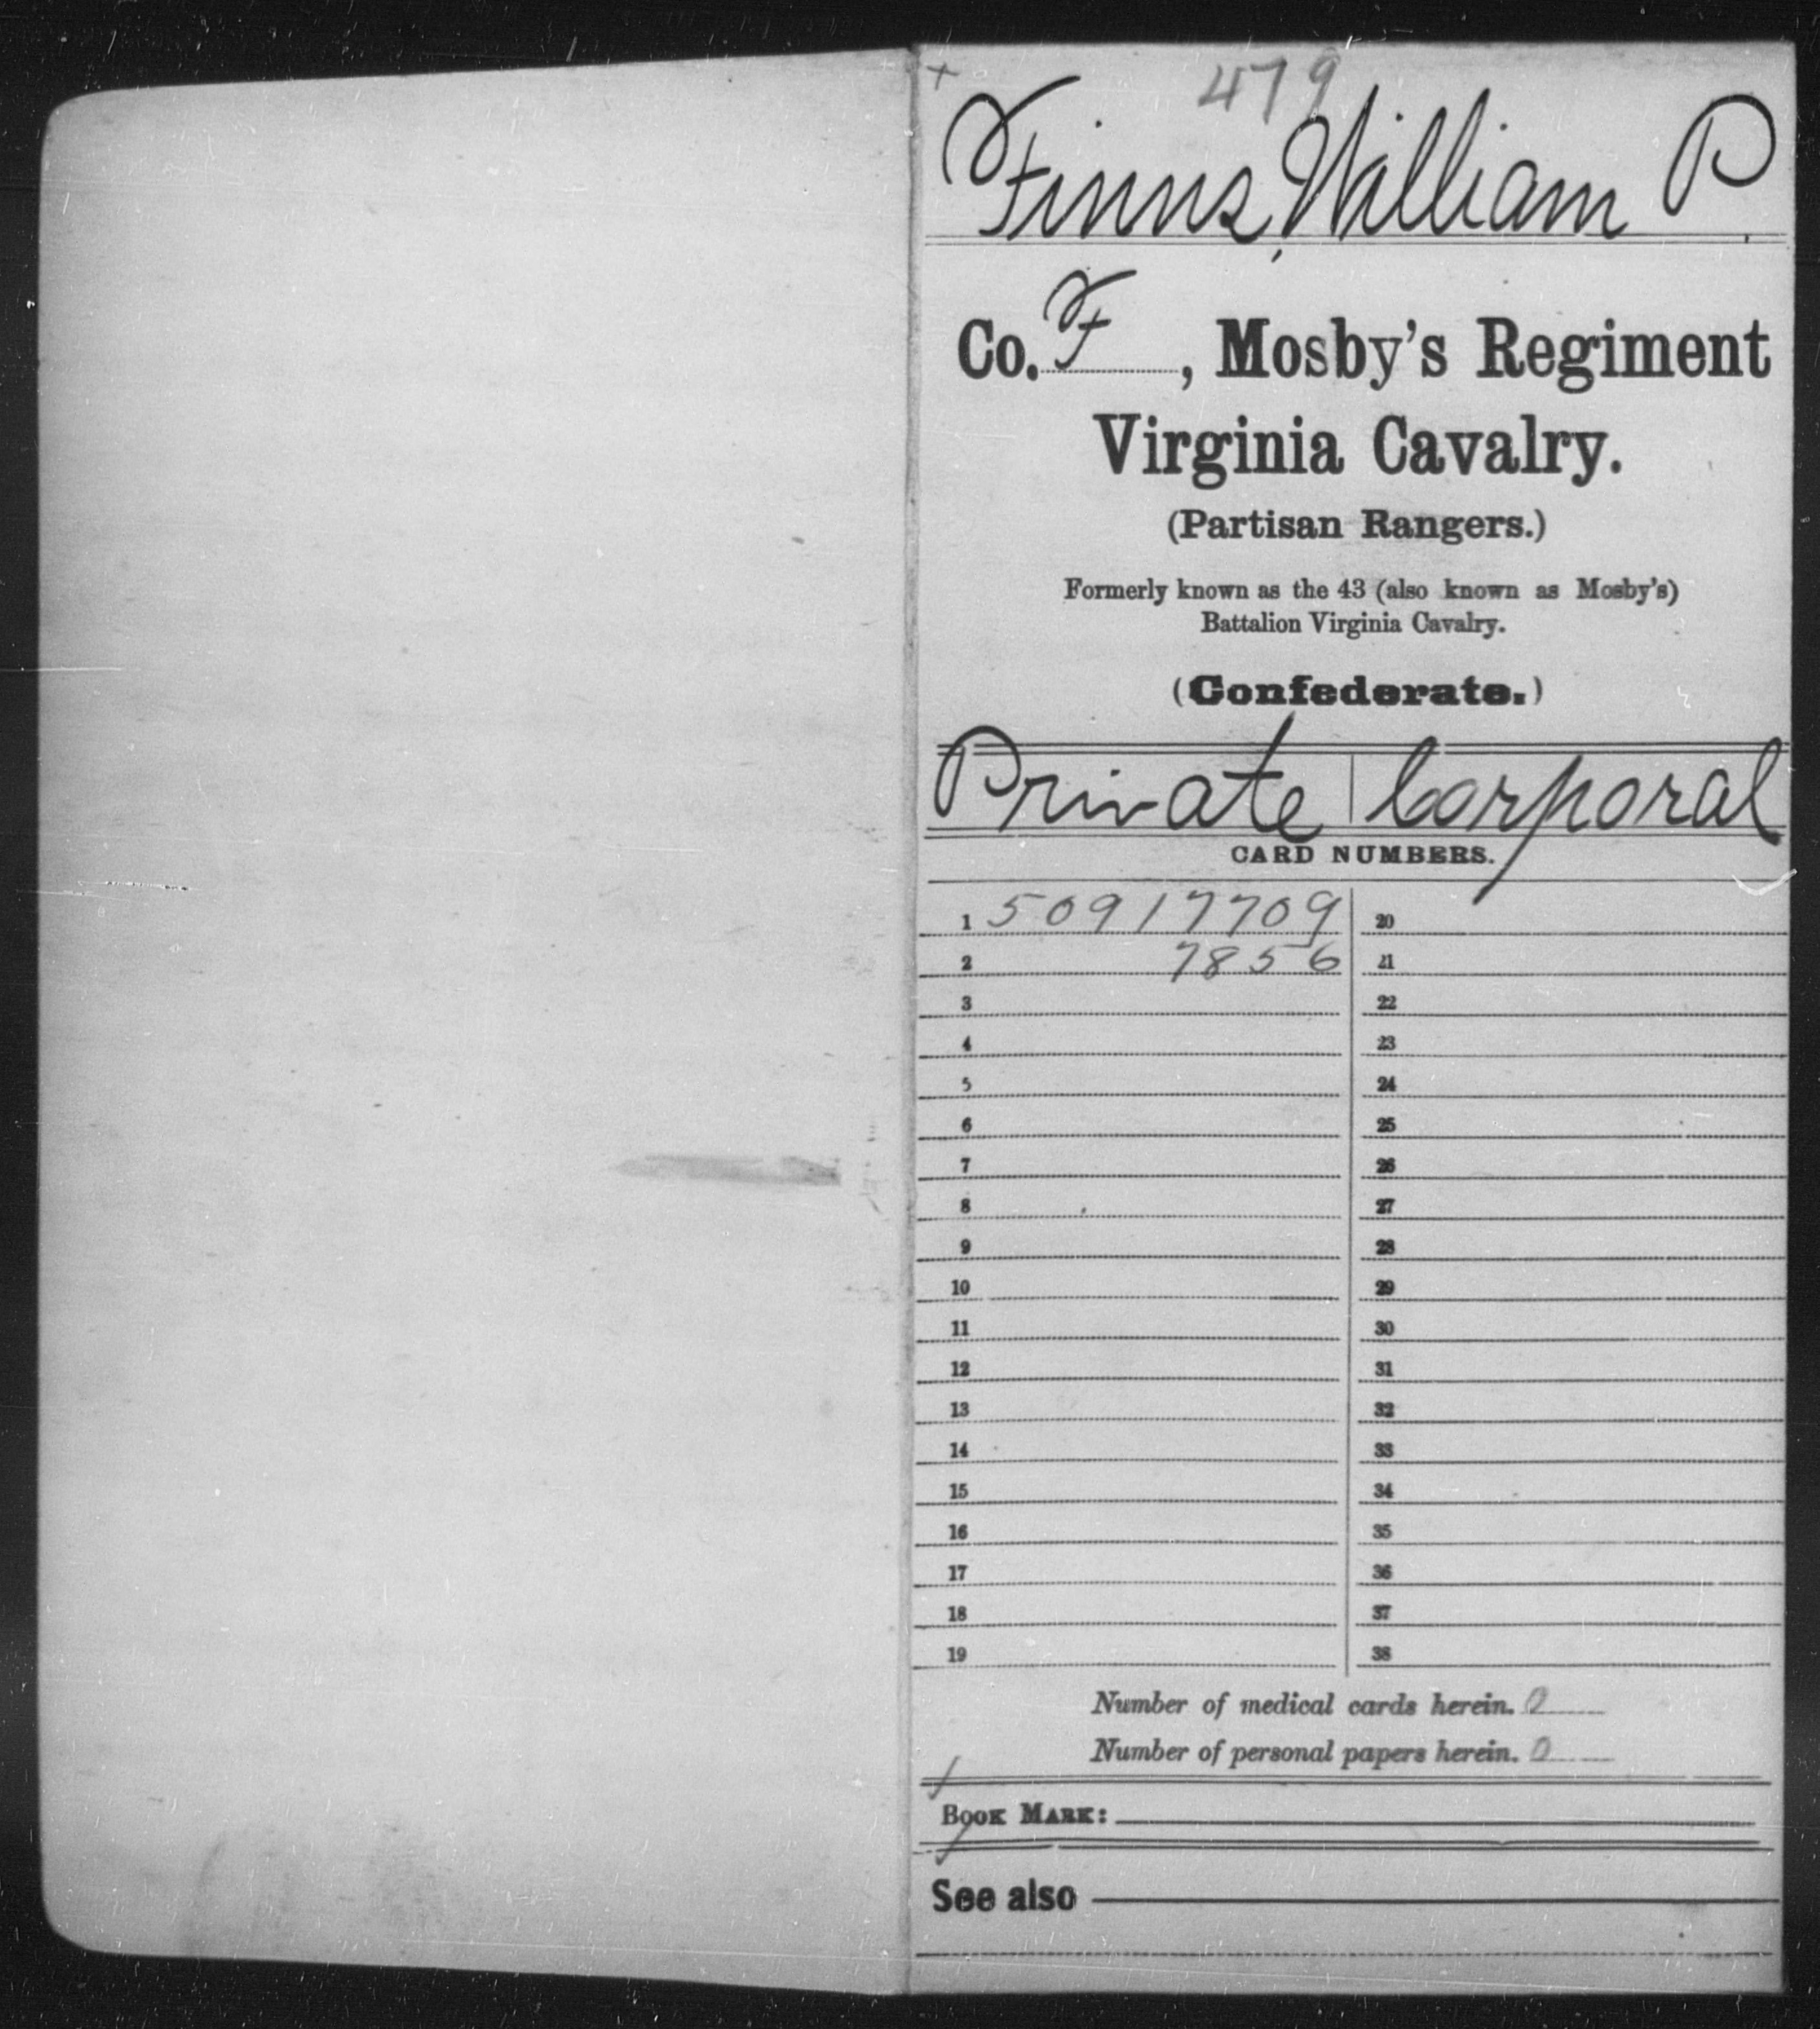 Confederate Soldiers from the State of Virginia - Finns, William P - Mosby's Regiment, Cavalry (Partisan Rangers)